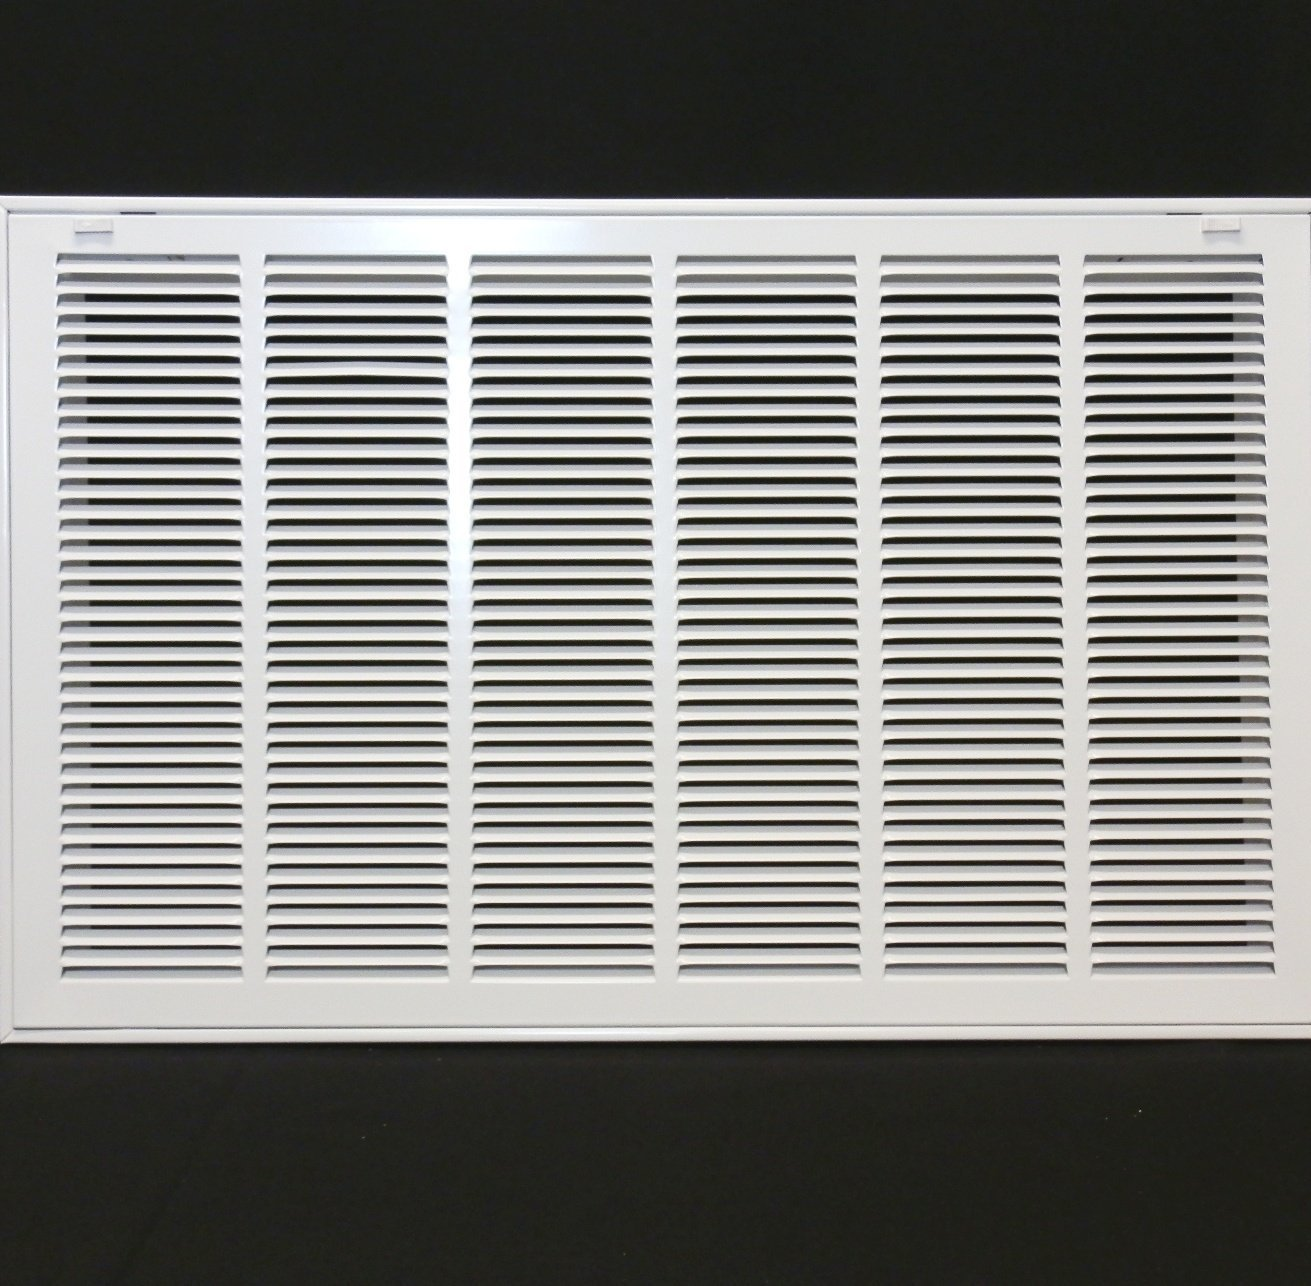 30'' X 20 Steel Return Air Filter Grille for 1'' Filter - Removable Face/Door - HVAC Duct Cover - Flat Stamped Face - White [Outer Dimensions: 32.5 X 21.75]